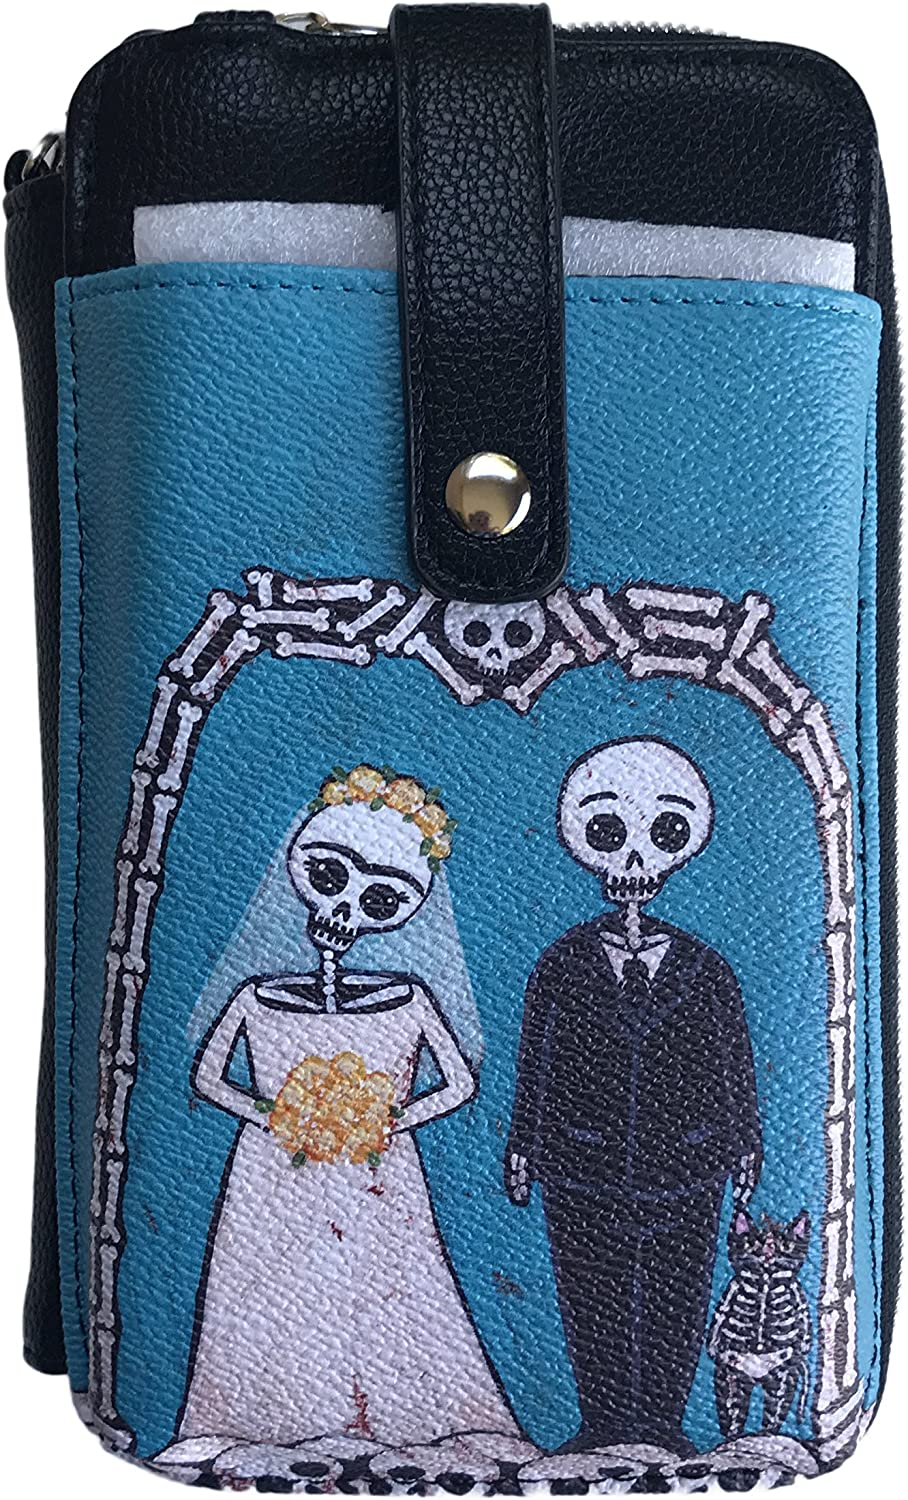 Ashley M. Cute Skeleton Couple Cell Phone Wristlet Cross Body Wallet Purse bluee